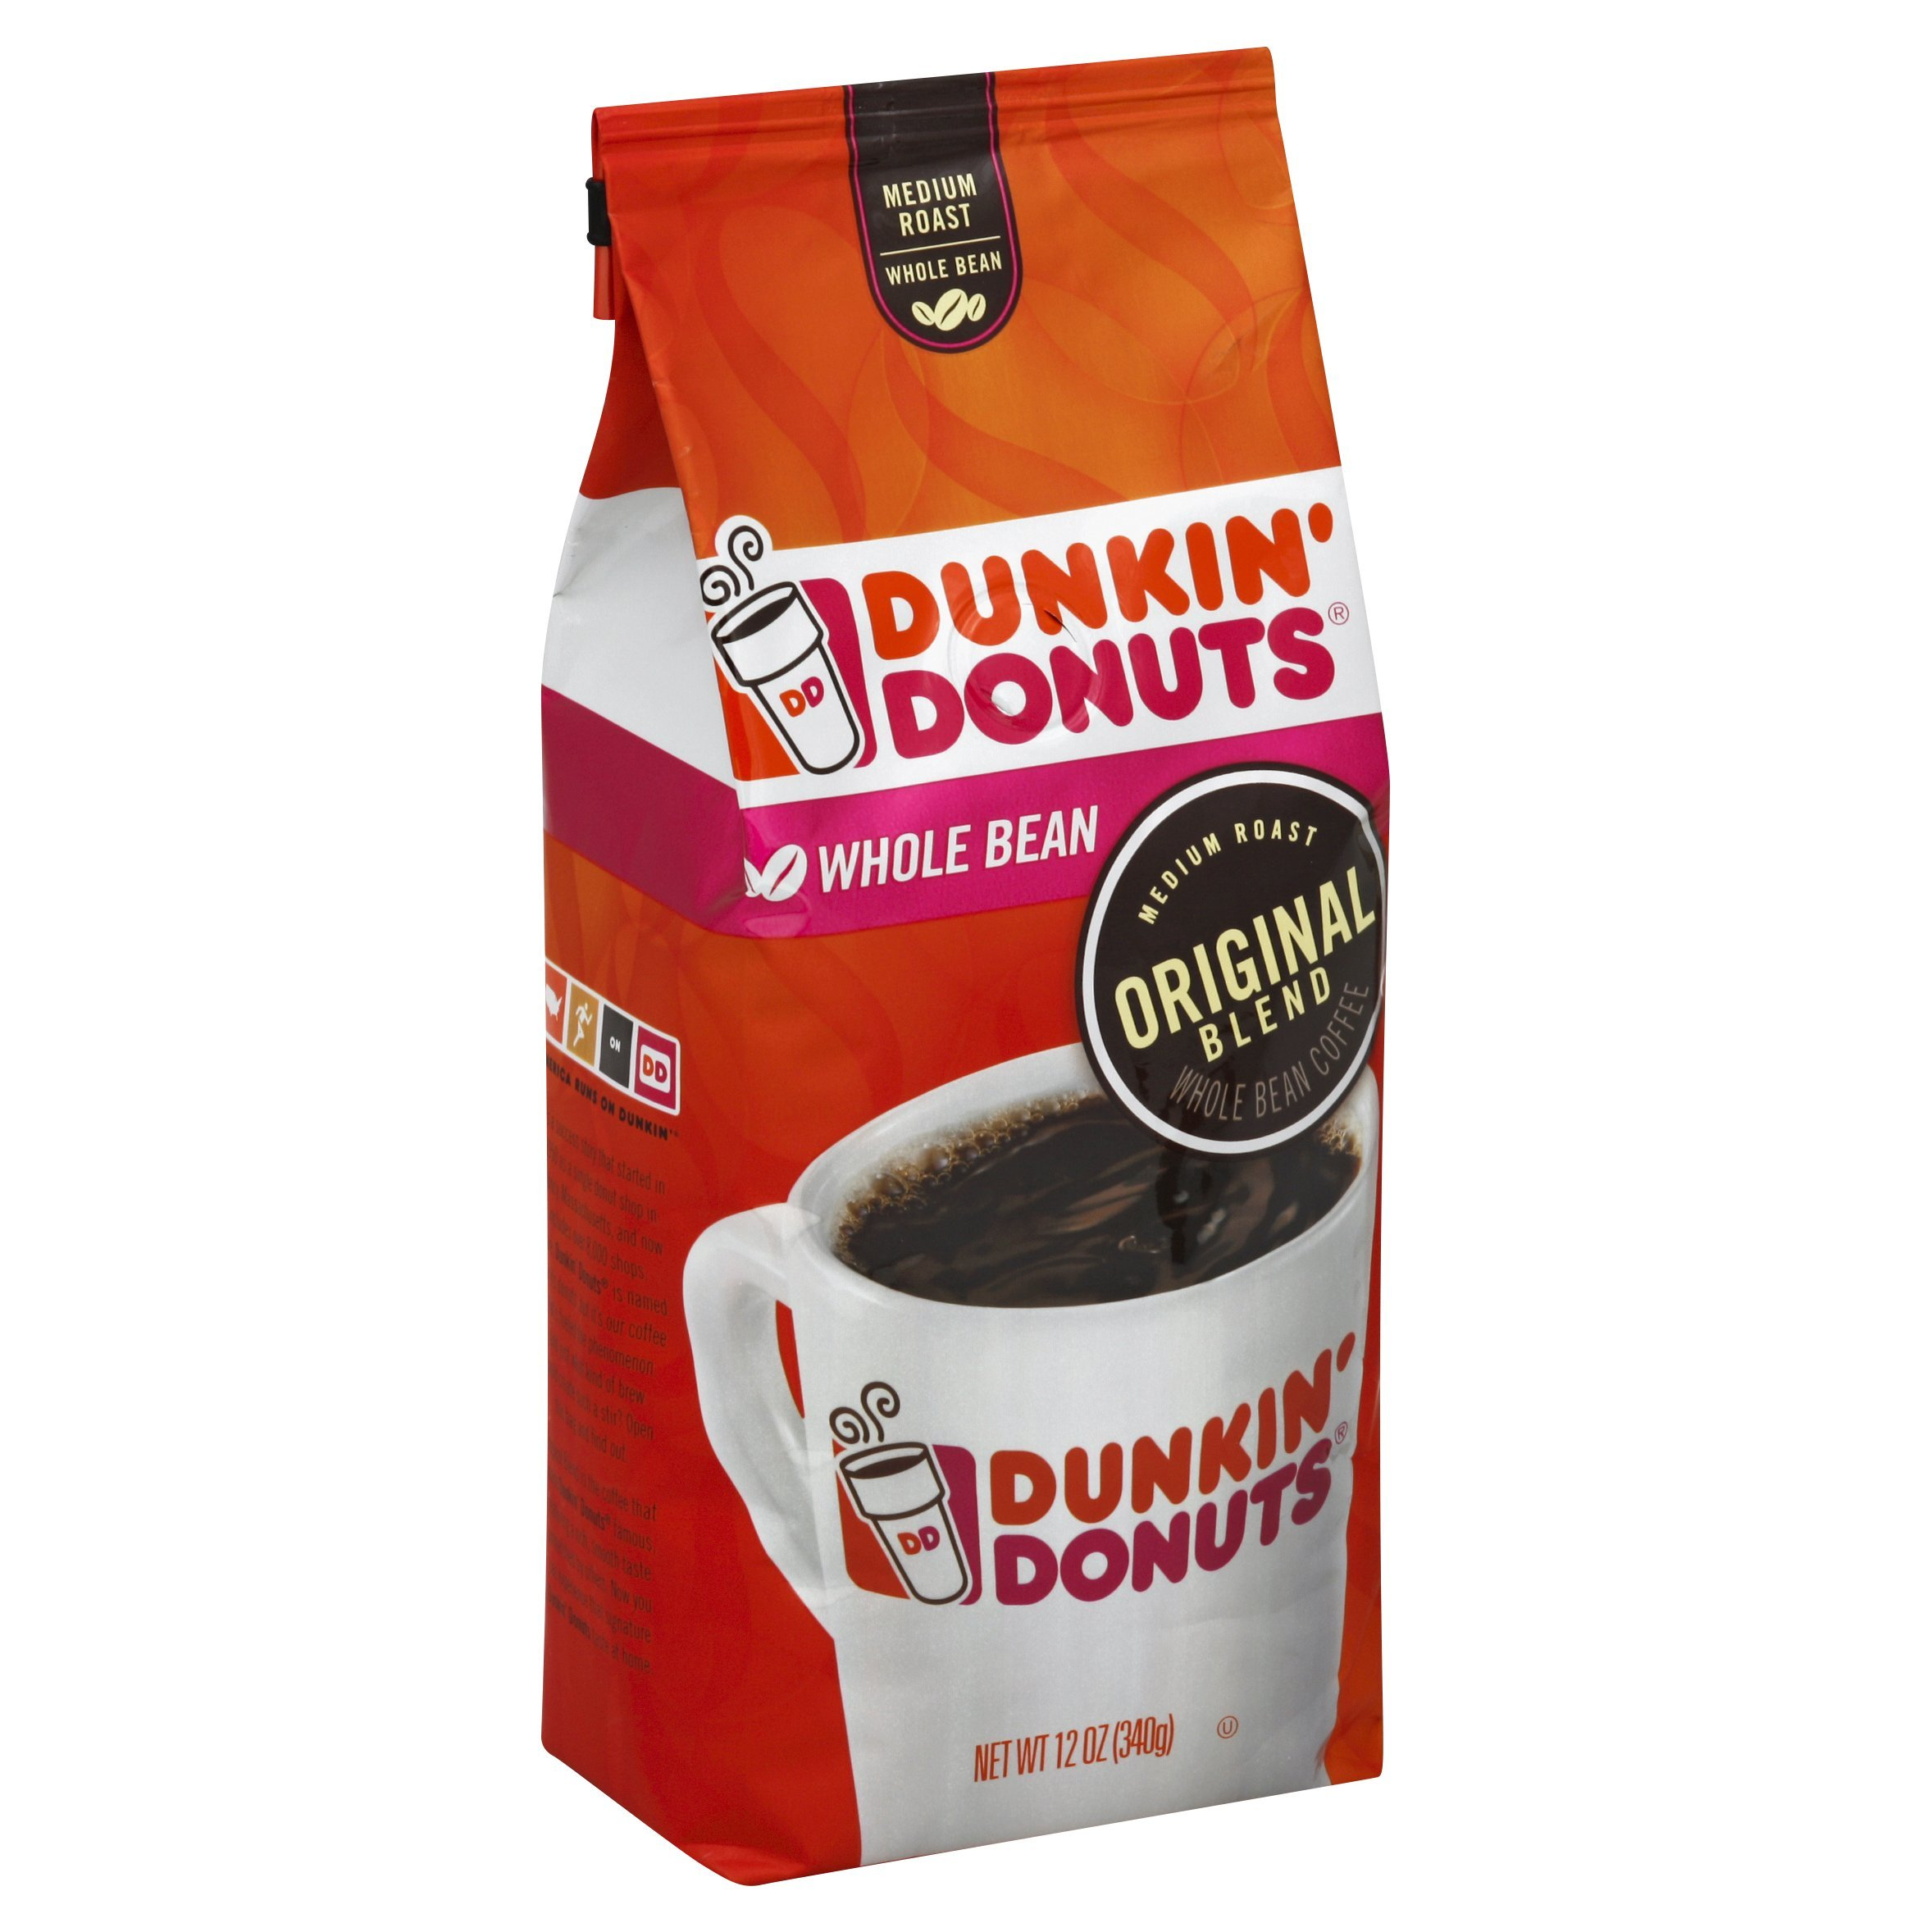 Dunkin' Donuts Original Blend Medium Roast Whole Bean Coffee, 12 Ounce, Pack of 6 by Dunkin' Donuts